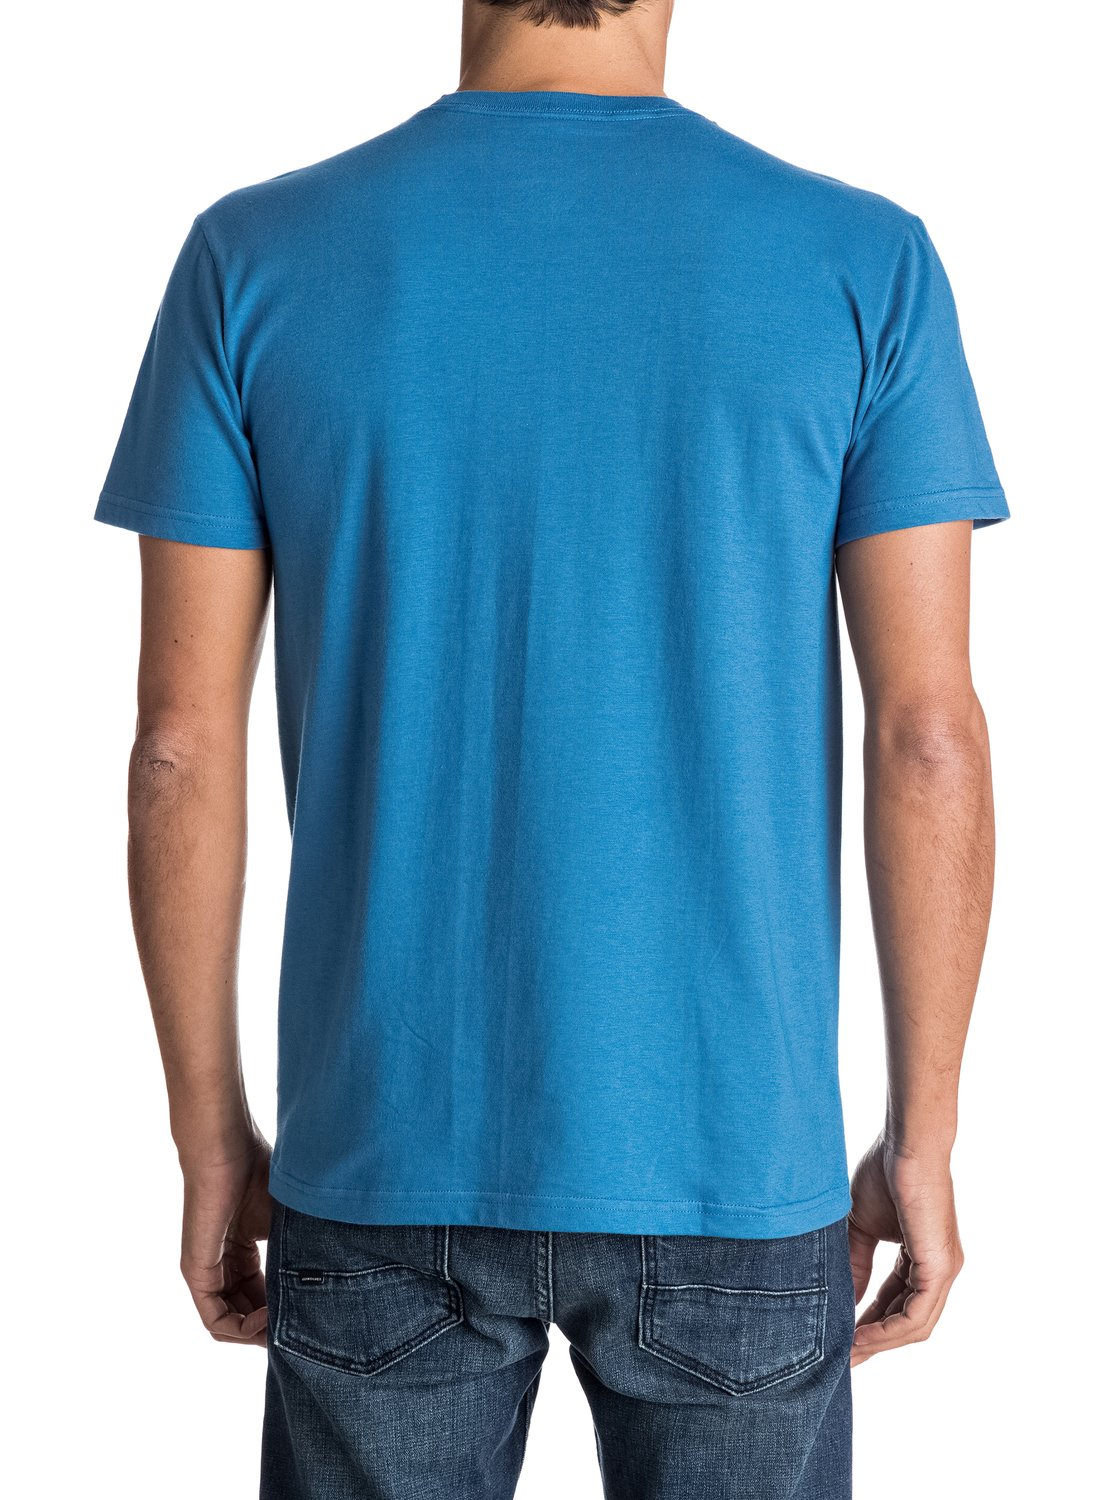 mountain wave logo tshirt 889351793270 quiksilver